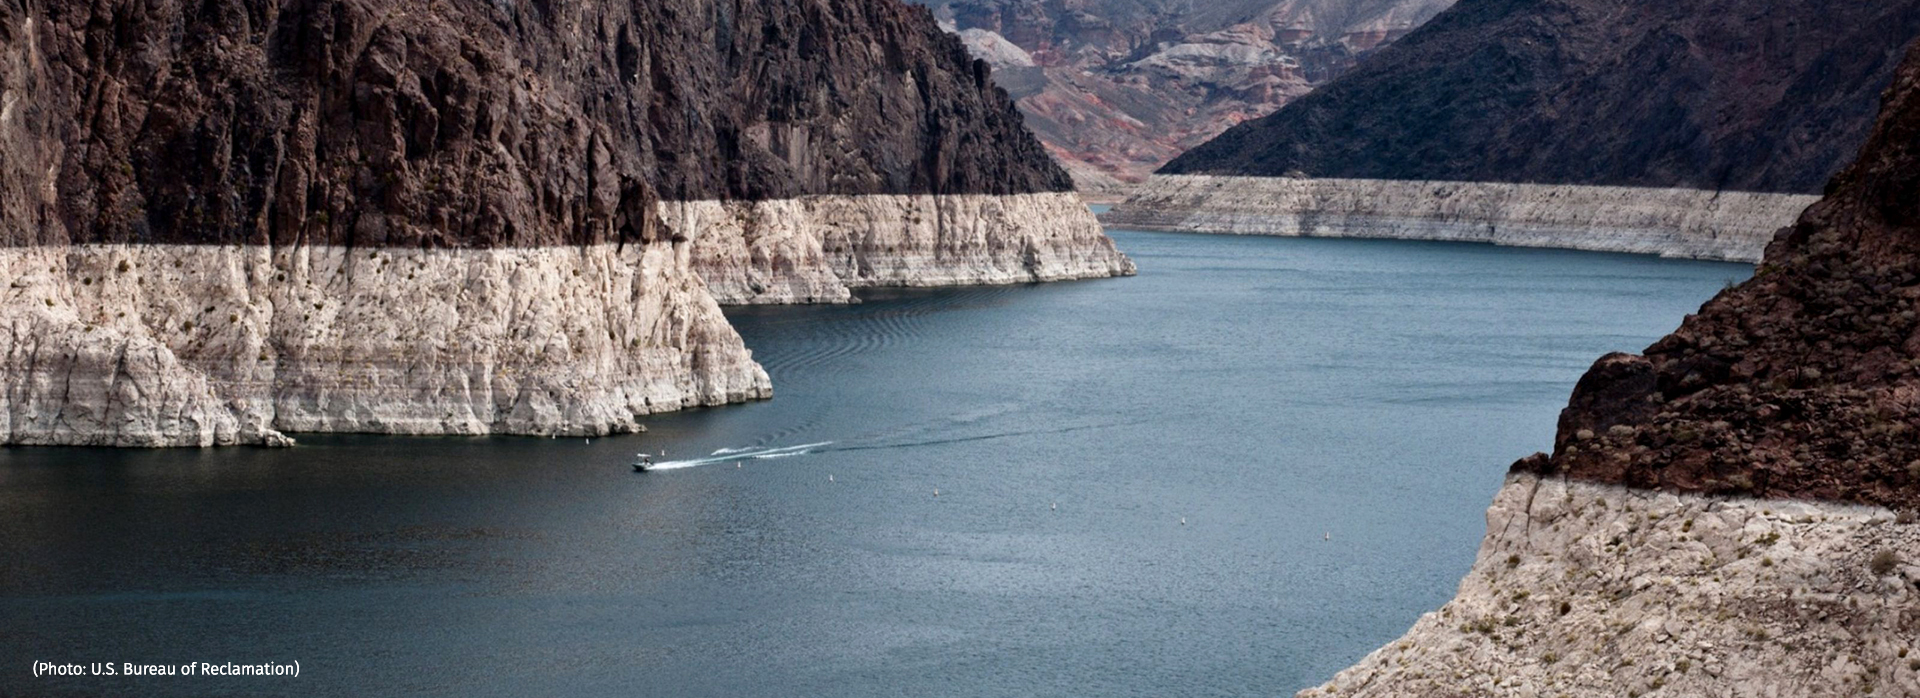 """Surface-water depletion in the Colorado River Basin has left this """"bathtub ring"""" of mineral deposits on Lake Mead, but groundwater loss is invisible. (Photo: U.S. Bureau of Reclamation)"""